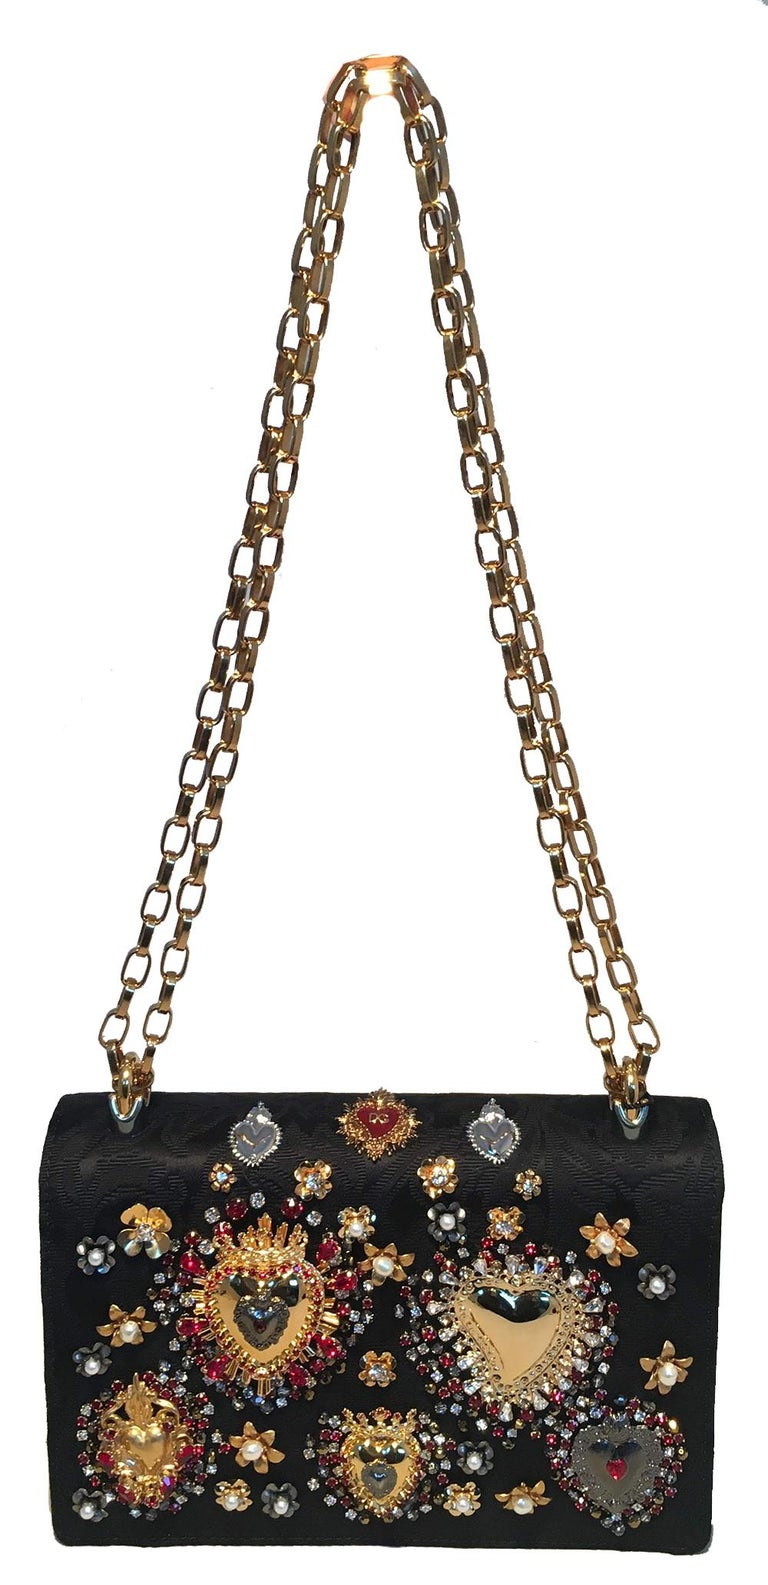 Dolce and Gabbana DG Girls Brocade Hearts Embellished Handbag NWOT condition. Black silk brocade body embellished with gold and silver metal hearts, red, grey and clear varying sized rhinestones and gold and silver metal mini flower appliques with